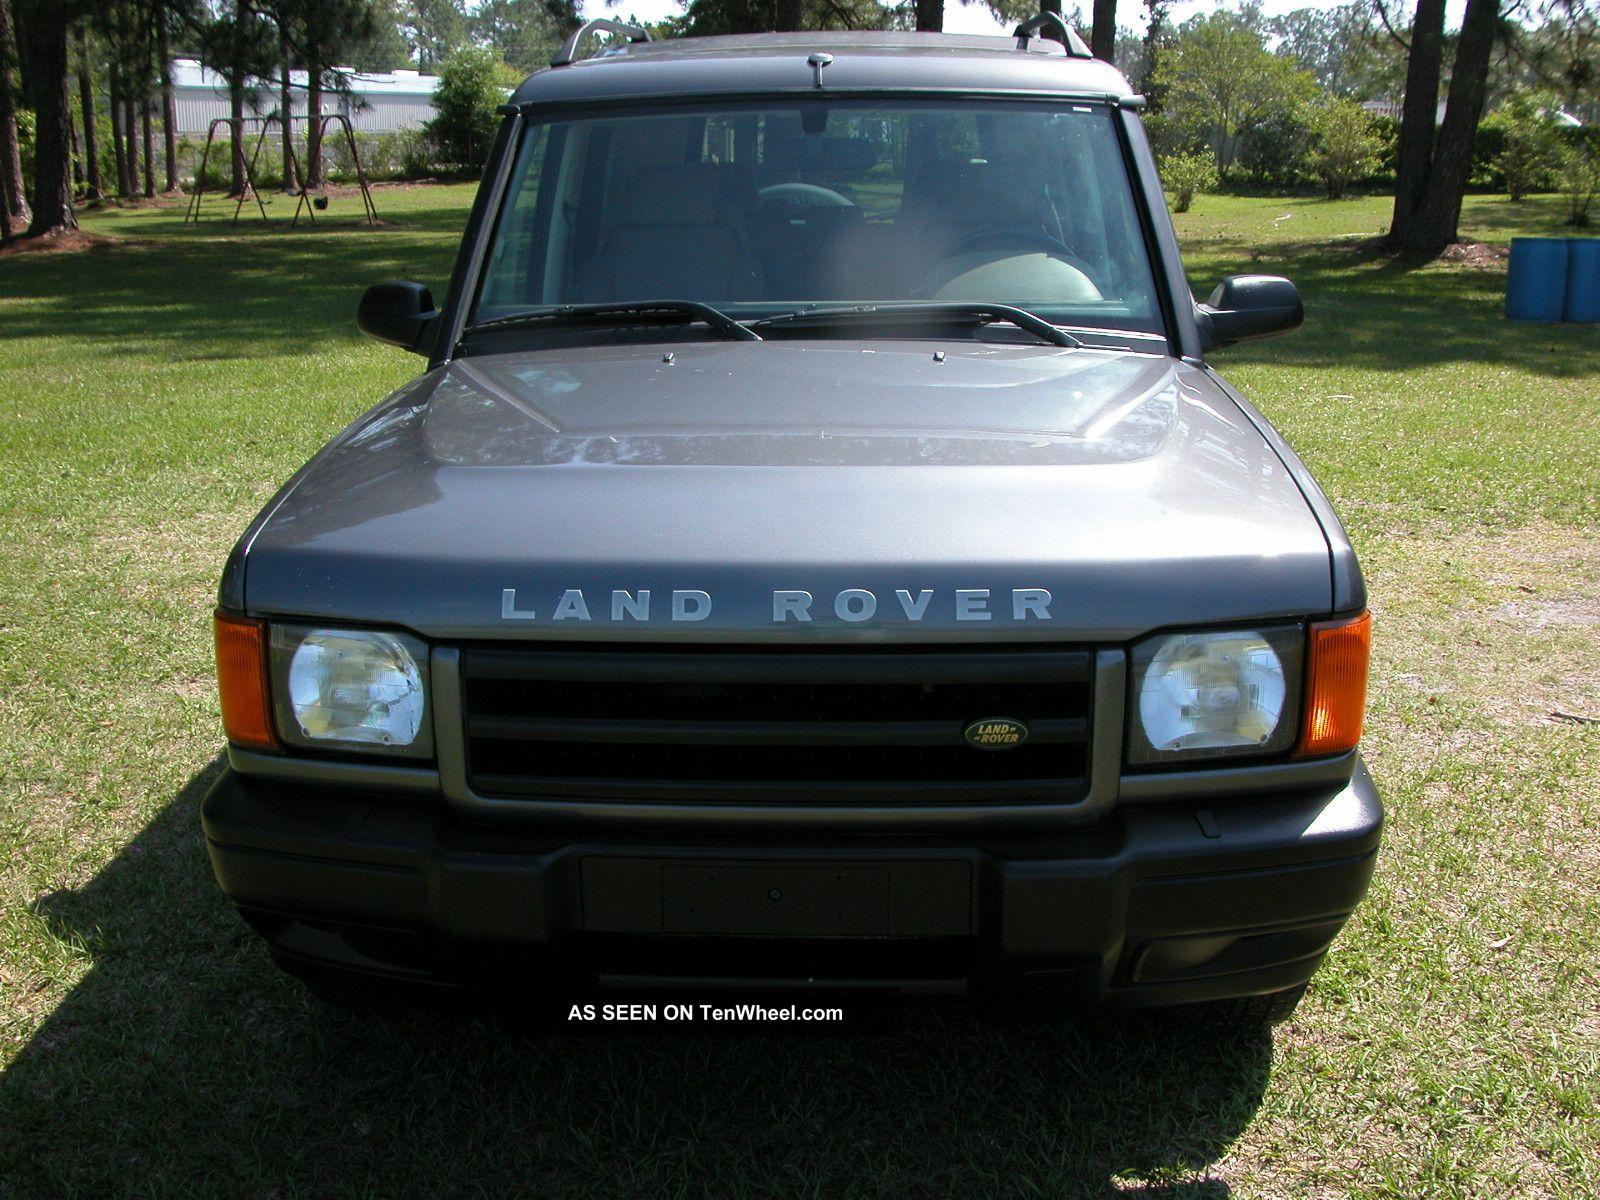 2002 land rover discovery series ii information and photos zombiedrive. Black Bedroom Furniture Sets. Home Design Ideas